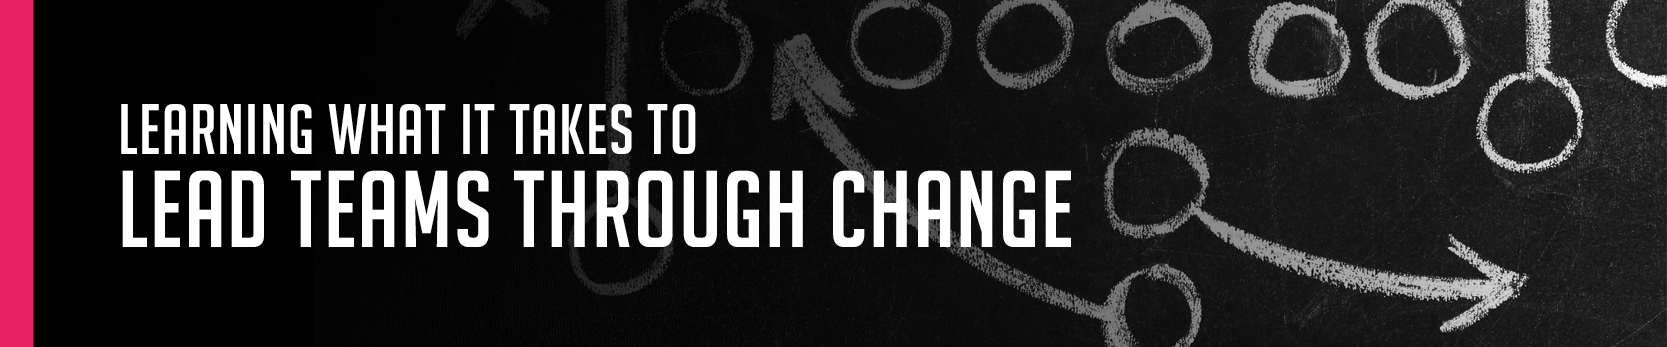 Learning From Other Leaders About What It Takes to Lead Teams Through Change